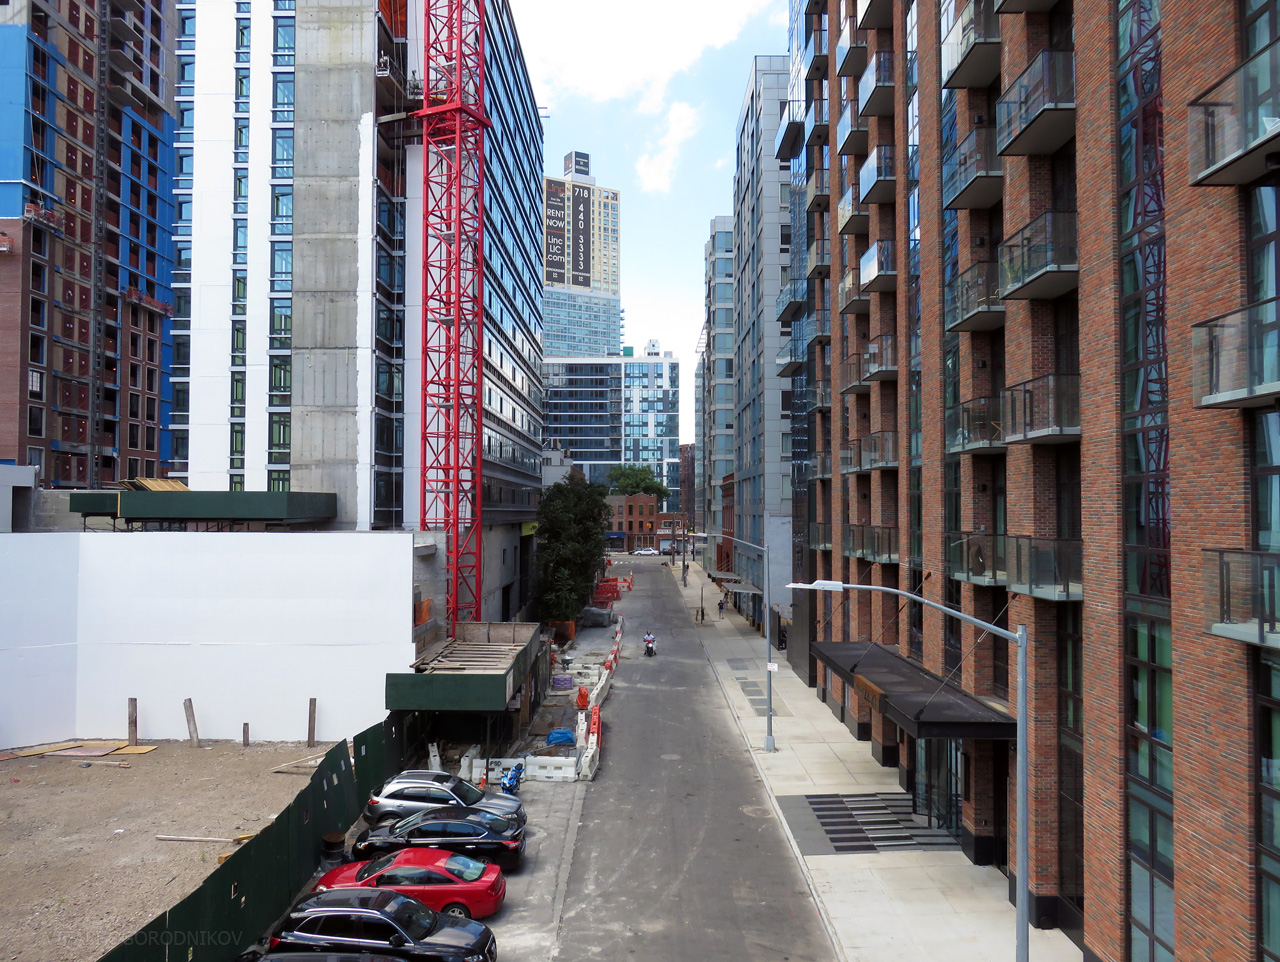 Purves Street as seen from the Thomson Avenue viaduct. Looking north.